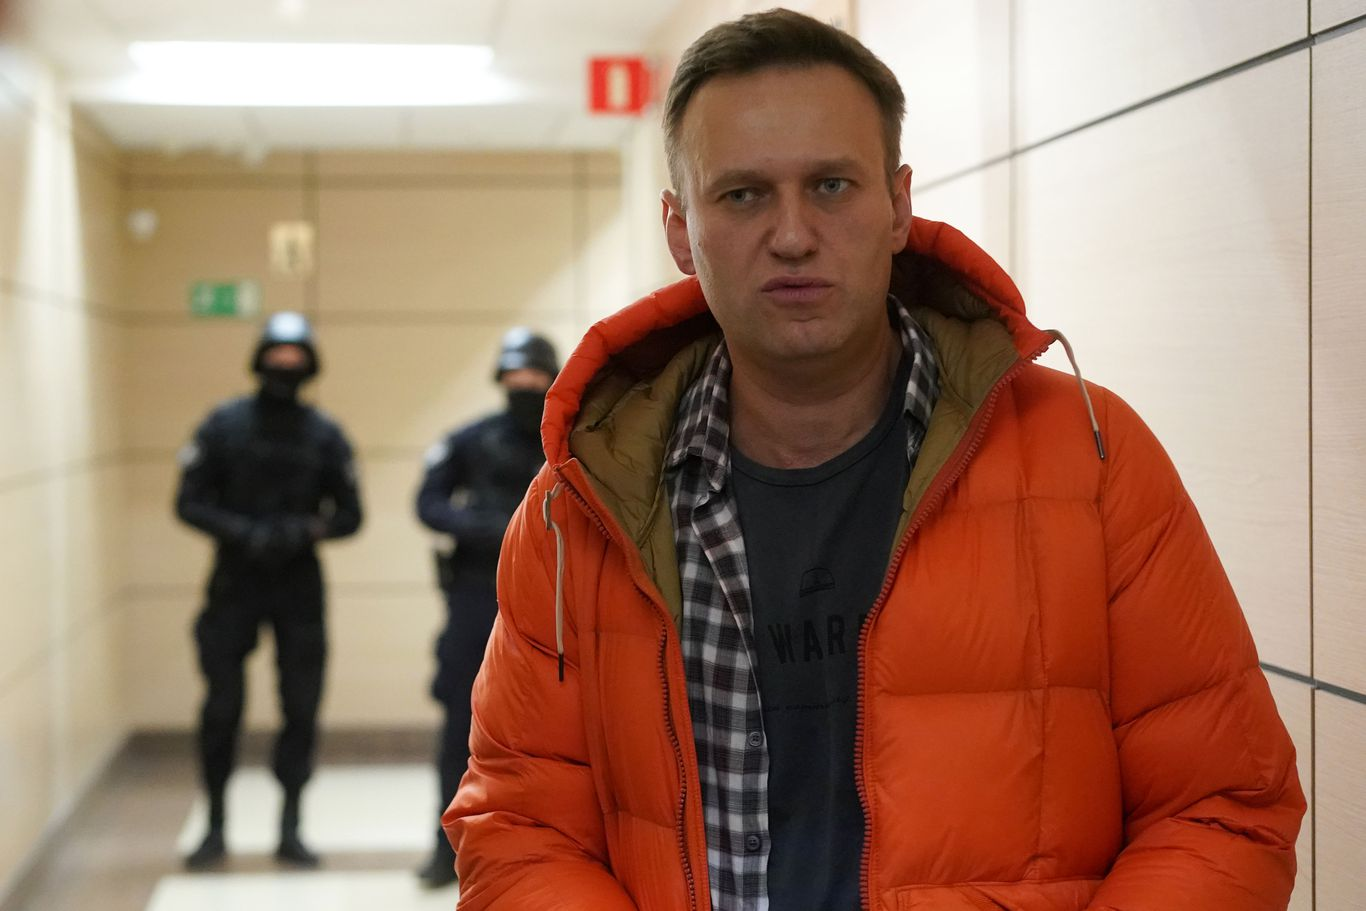 German doctors say tests suggest Putin critic Navalny was poisoned thumbnail